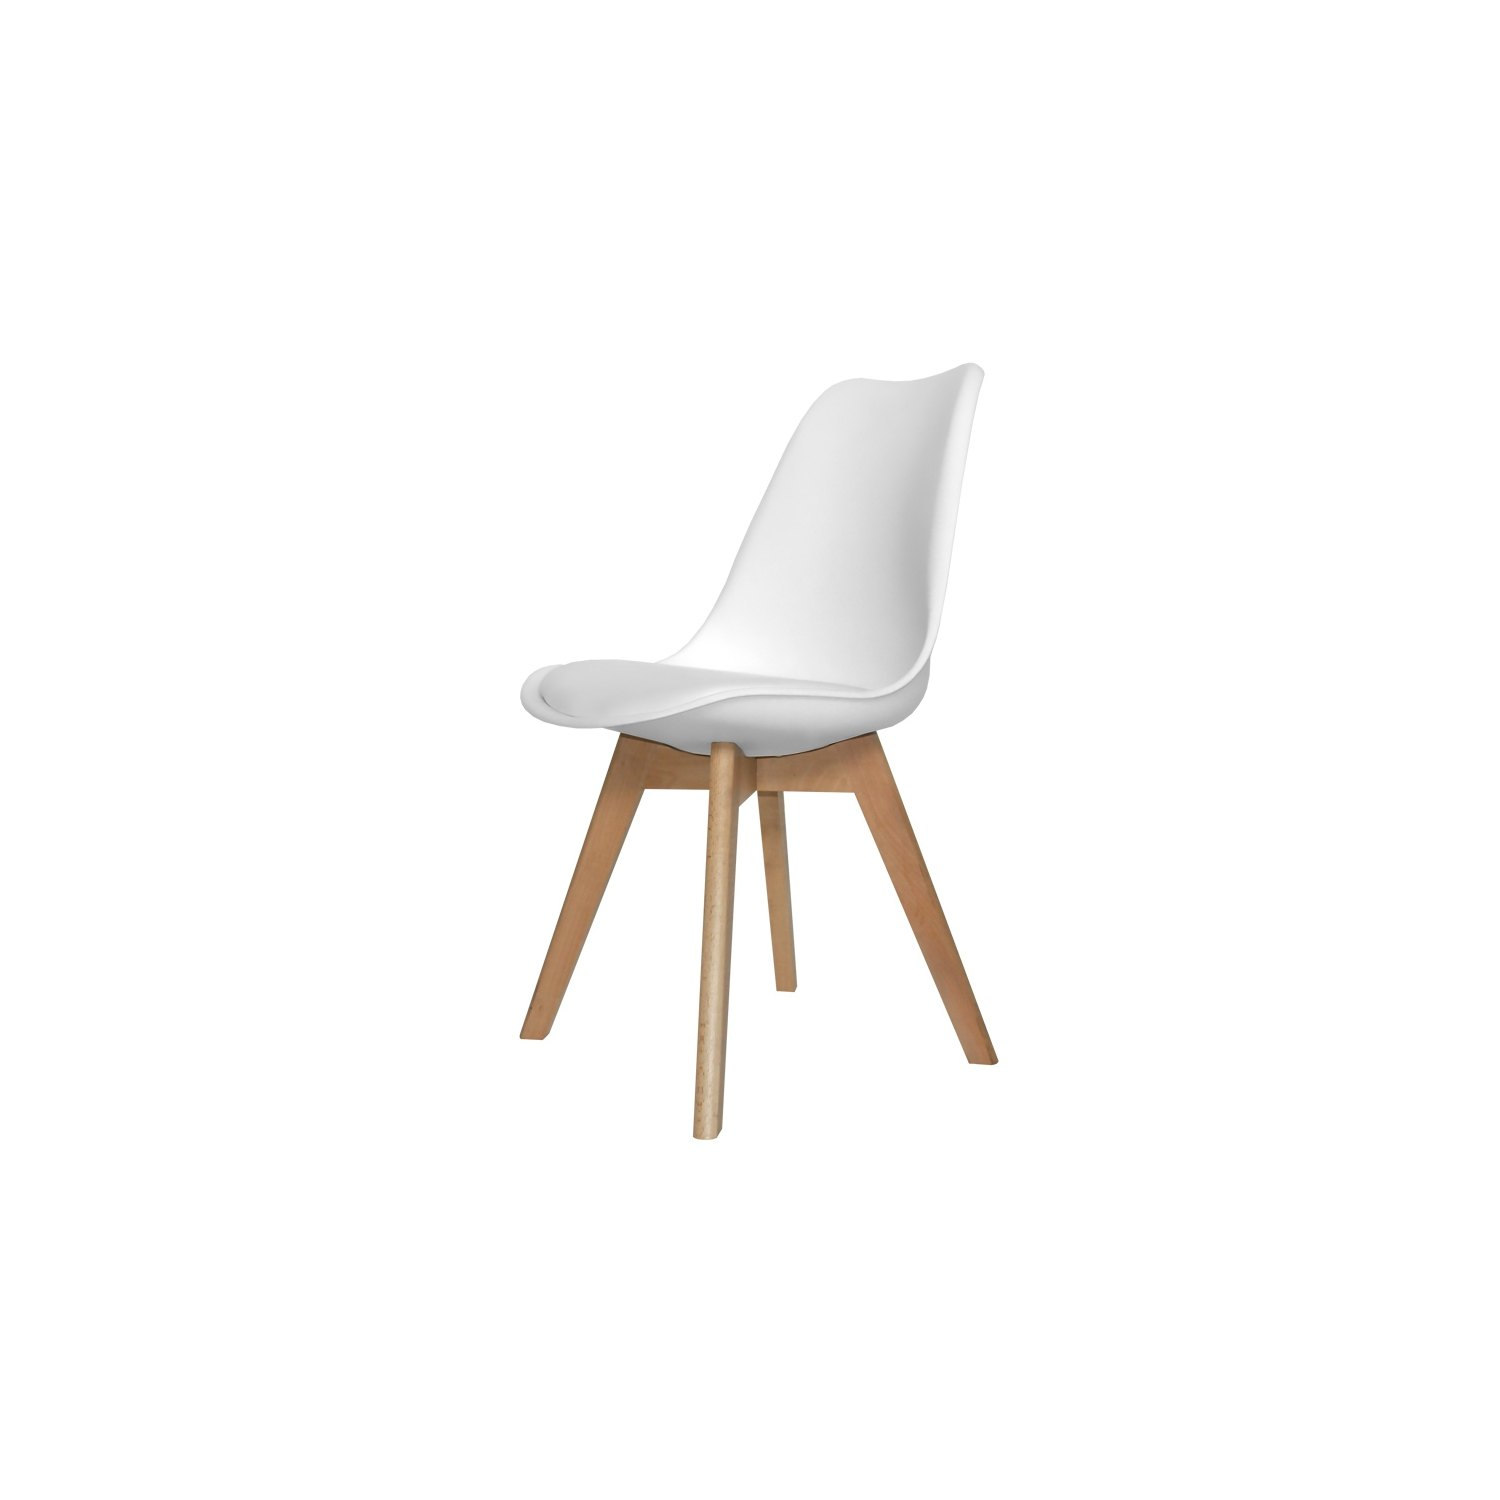 Silla new tower blanca con patas rectangulares en haya for Sillas de cocina baratas online